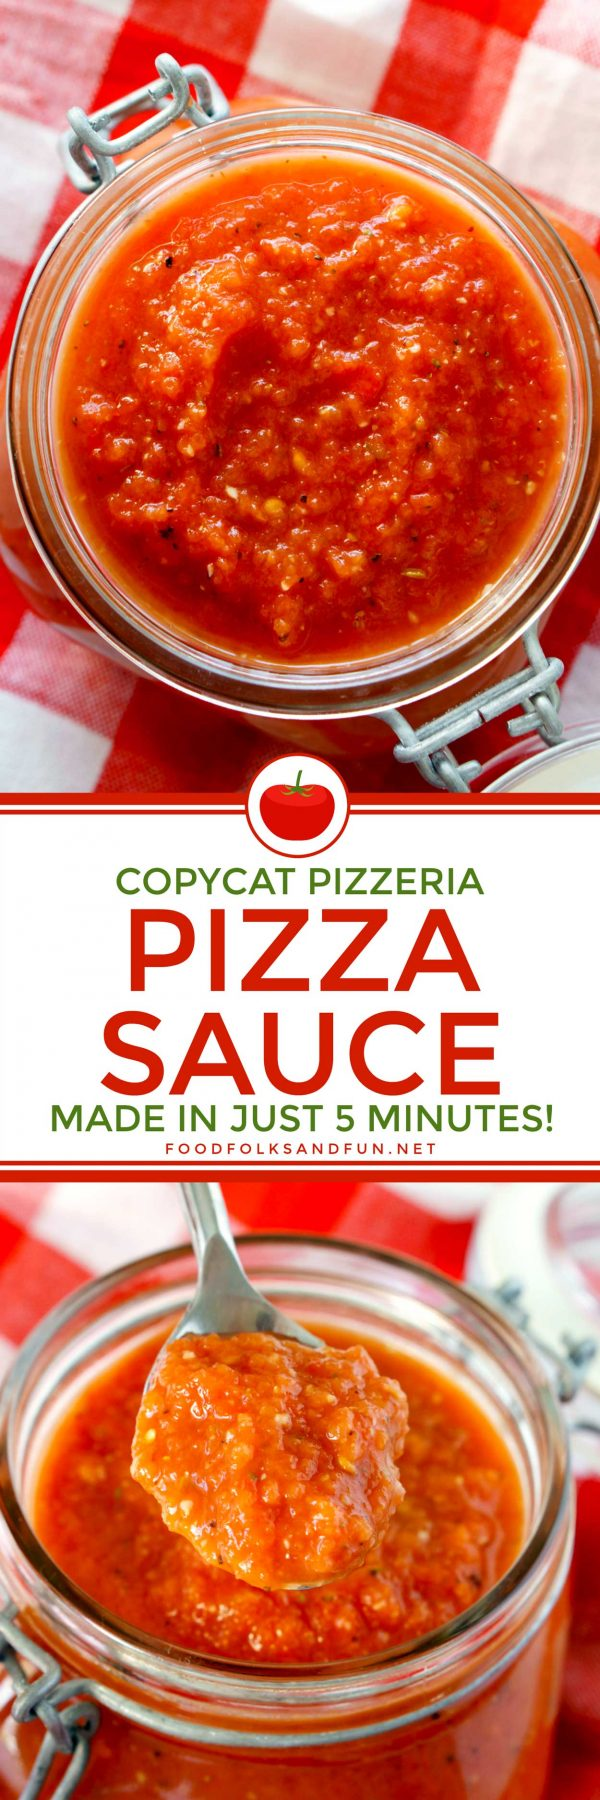 This Copycat Pizzeria Pizza Sauce Recipe tastes as if it came from your favorite pizzeria. It's SO easy to make, all you need is 5 minutes and a blender! Plus it costs just $1.95 to make!  via @foodfolksandfun